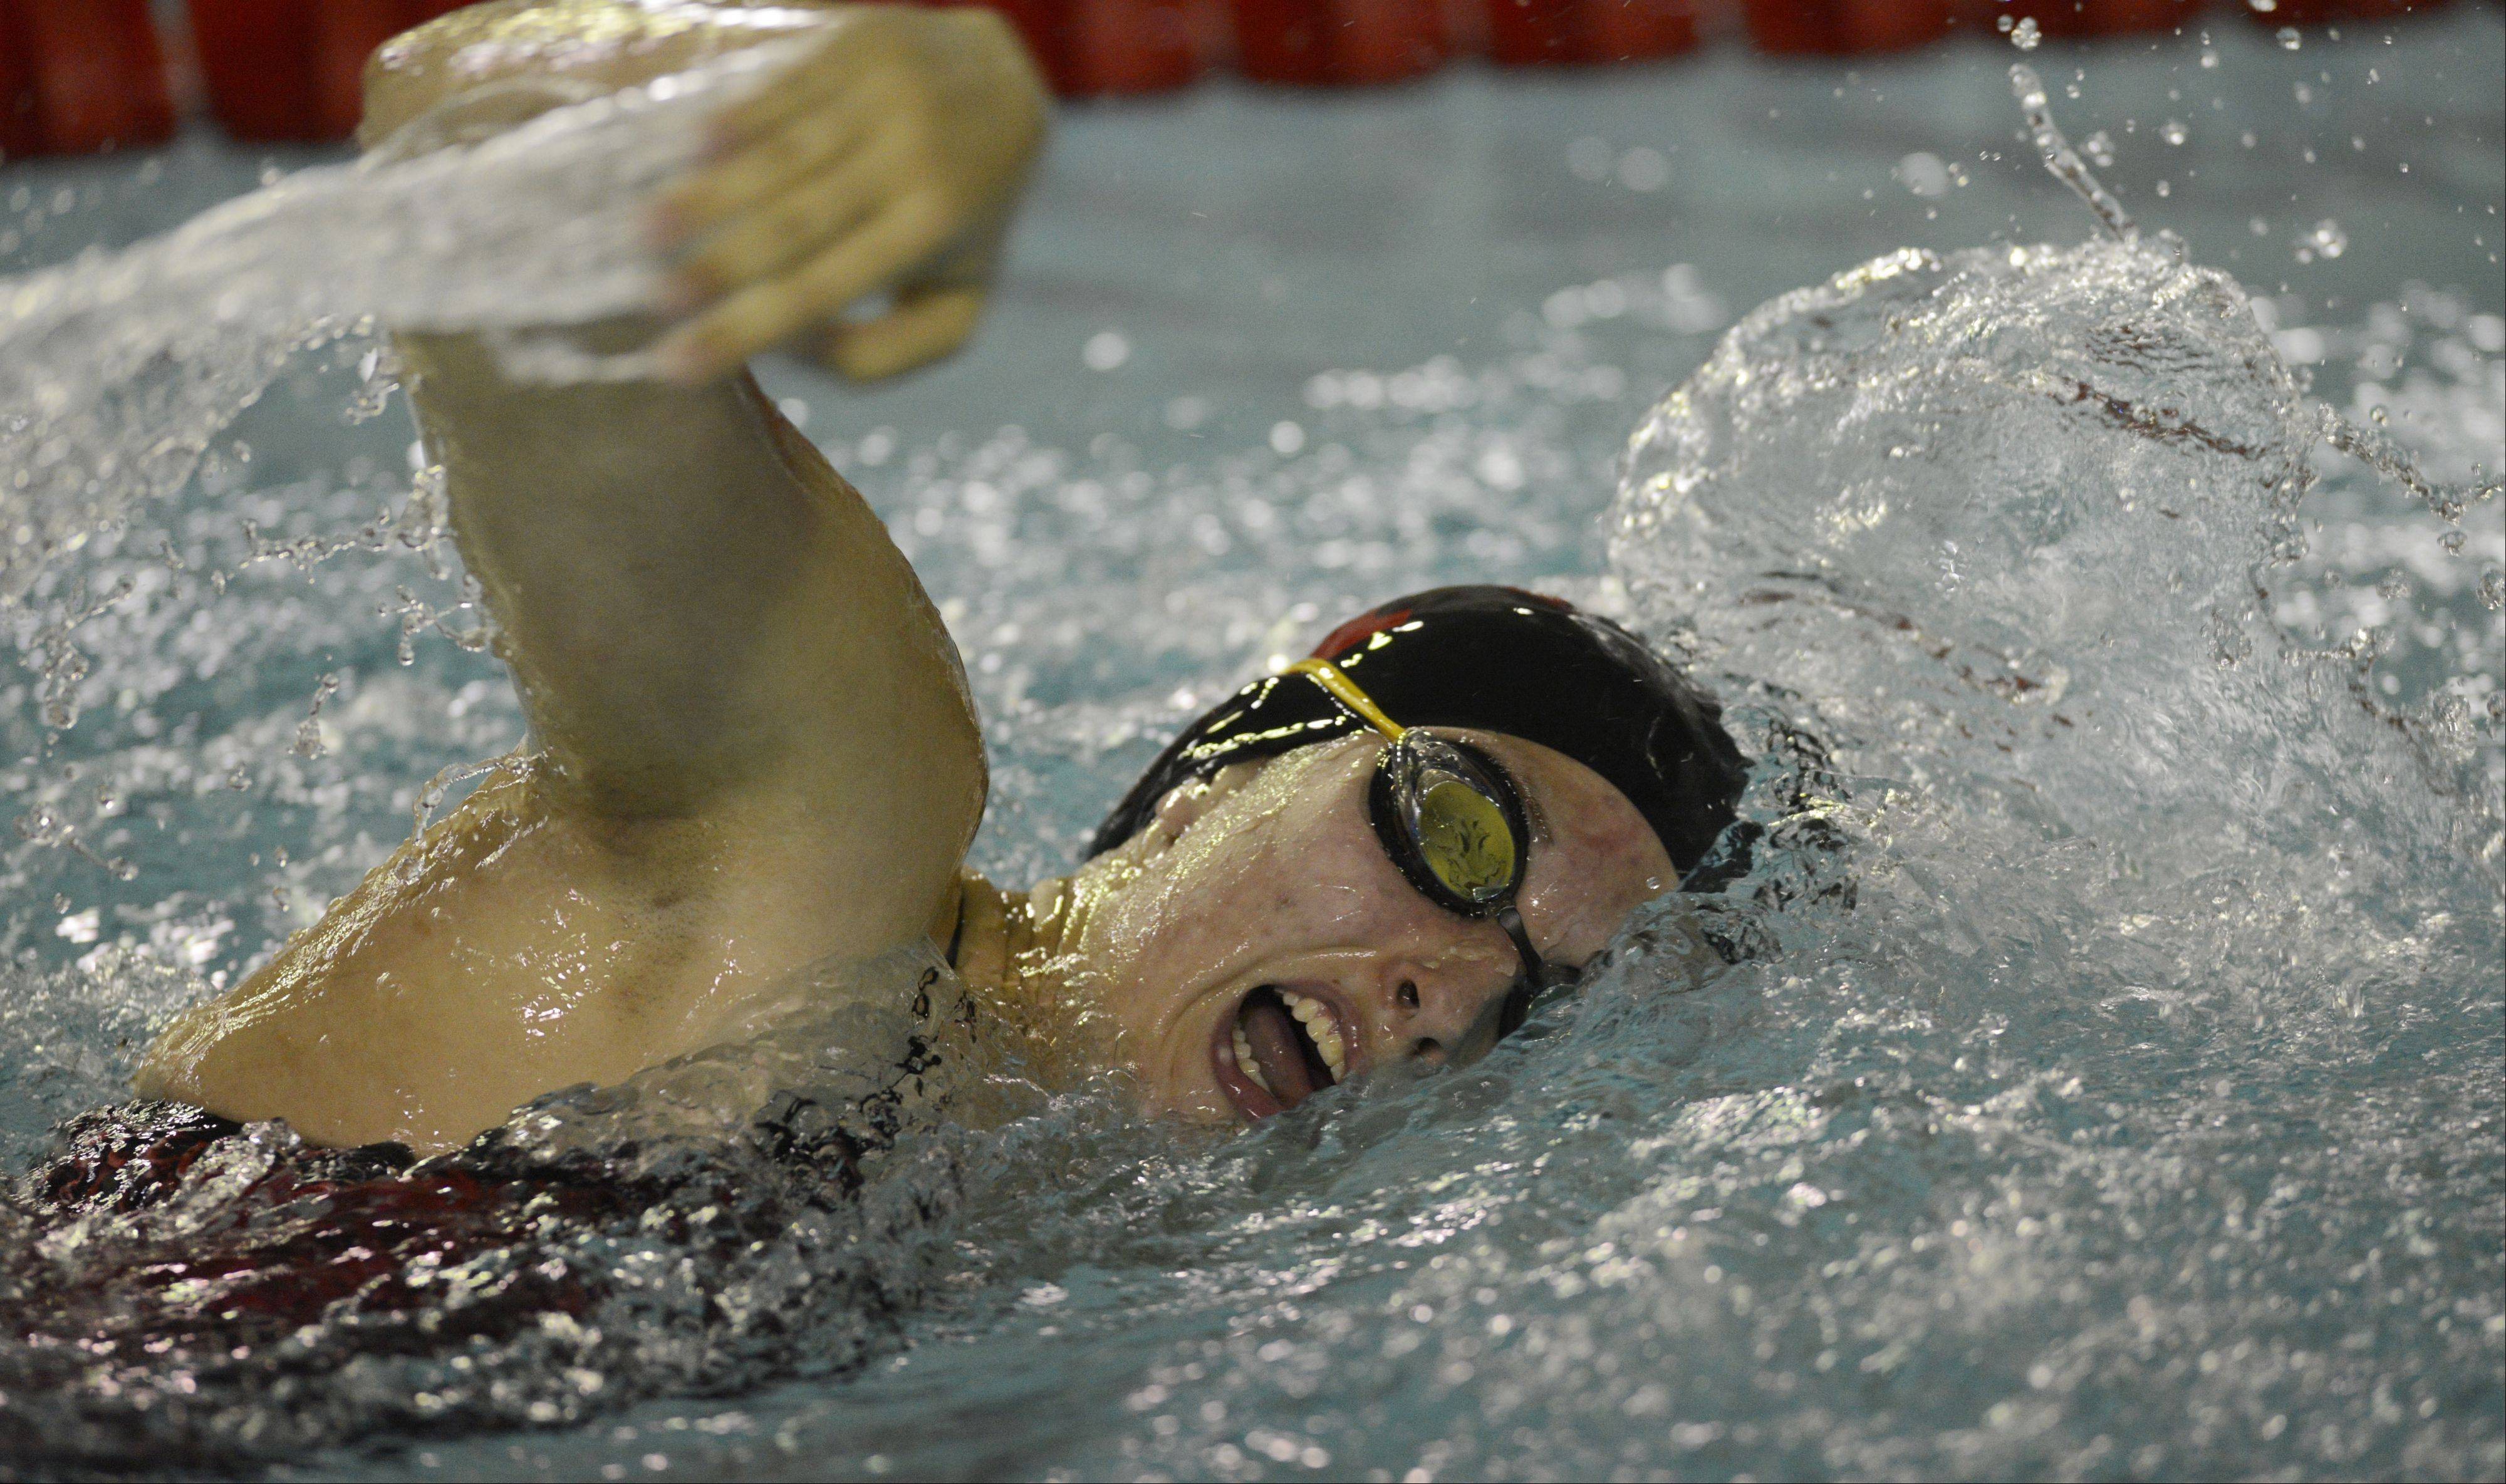 Palatine's Tess O'Brien heads for a victory in the 200-meter freestyle during Wednesday's meet against visiting Hoffman Estates.